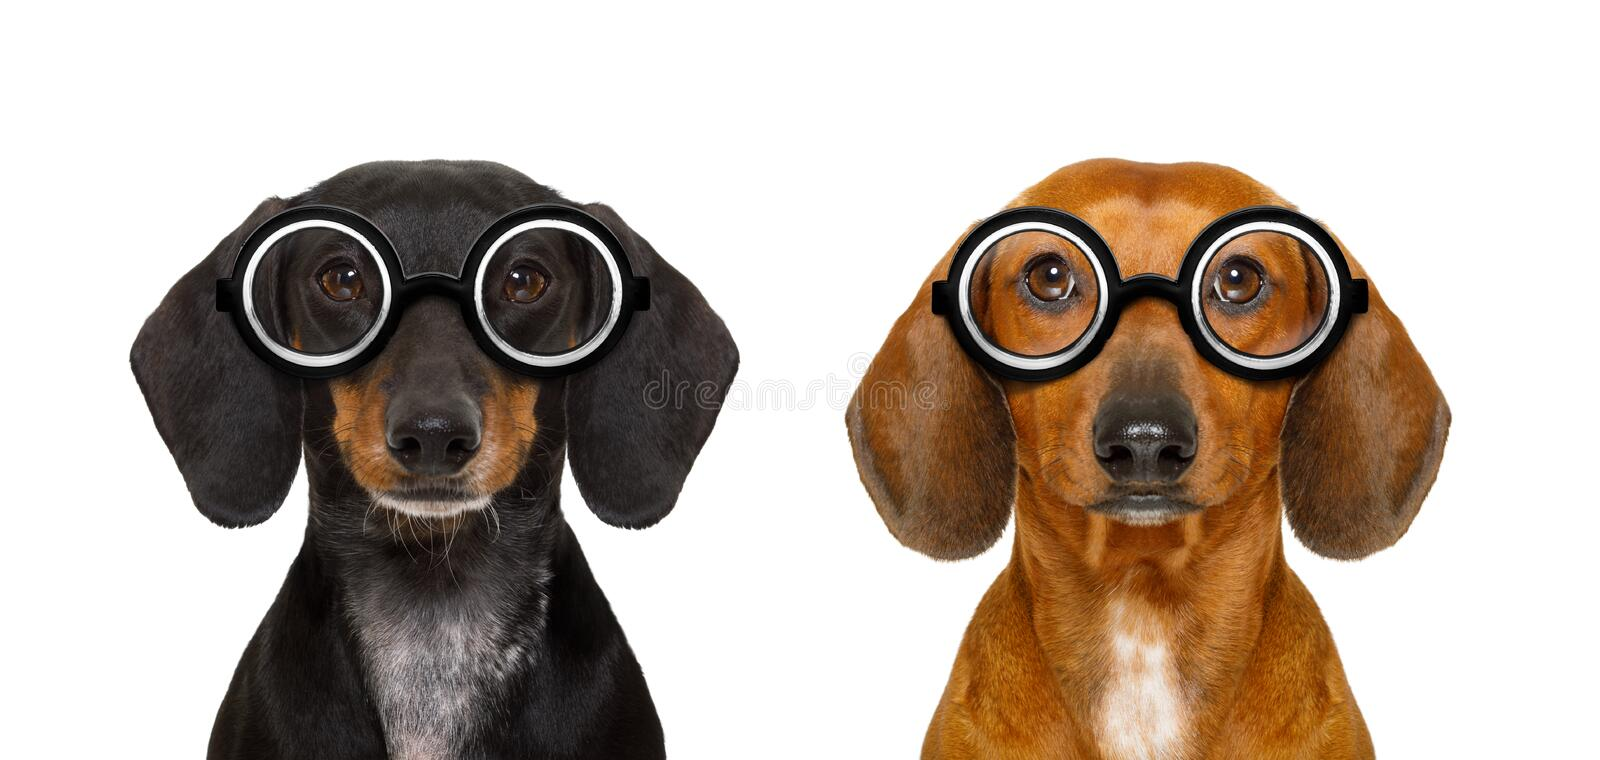 Couple of dumb nerd silly dachshunds stock image